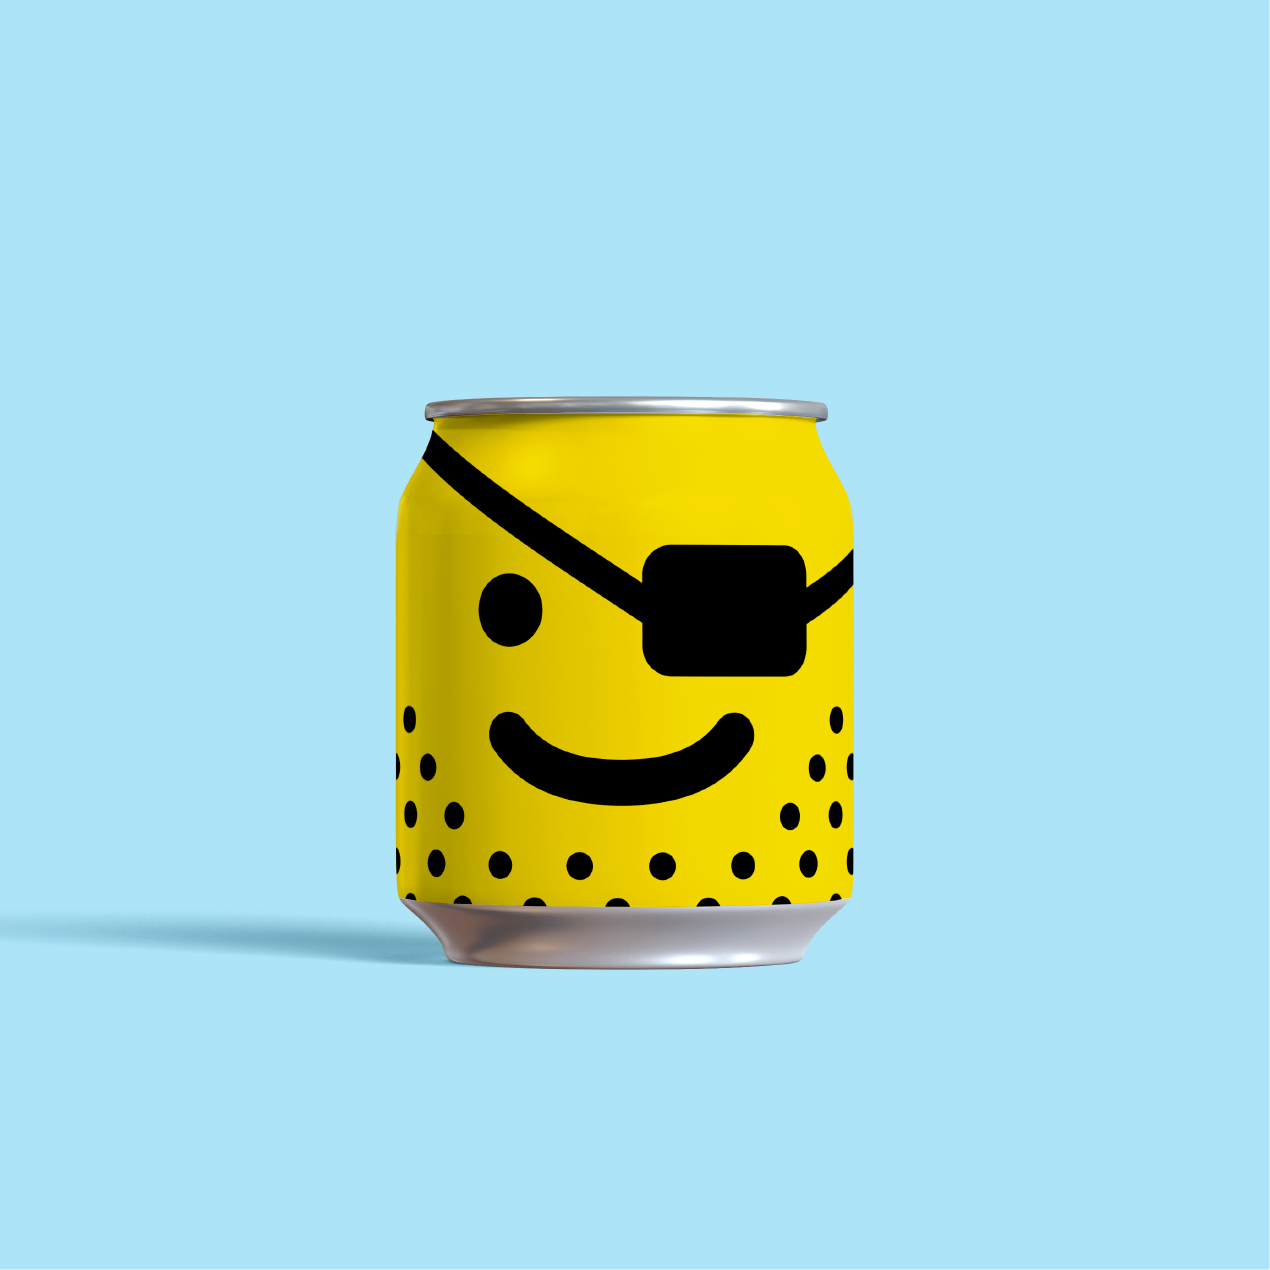 Febrewery_Lego_Can_01.png